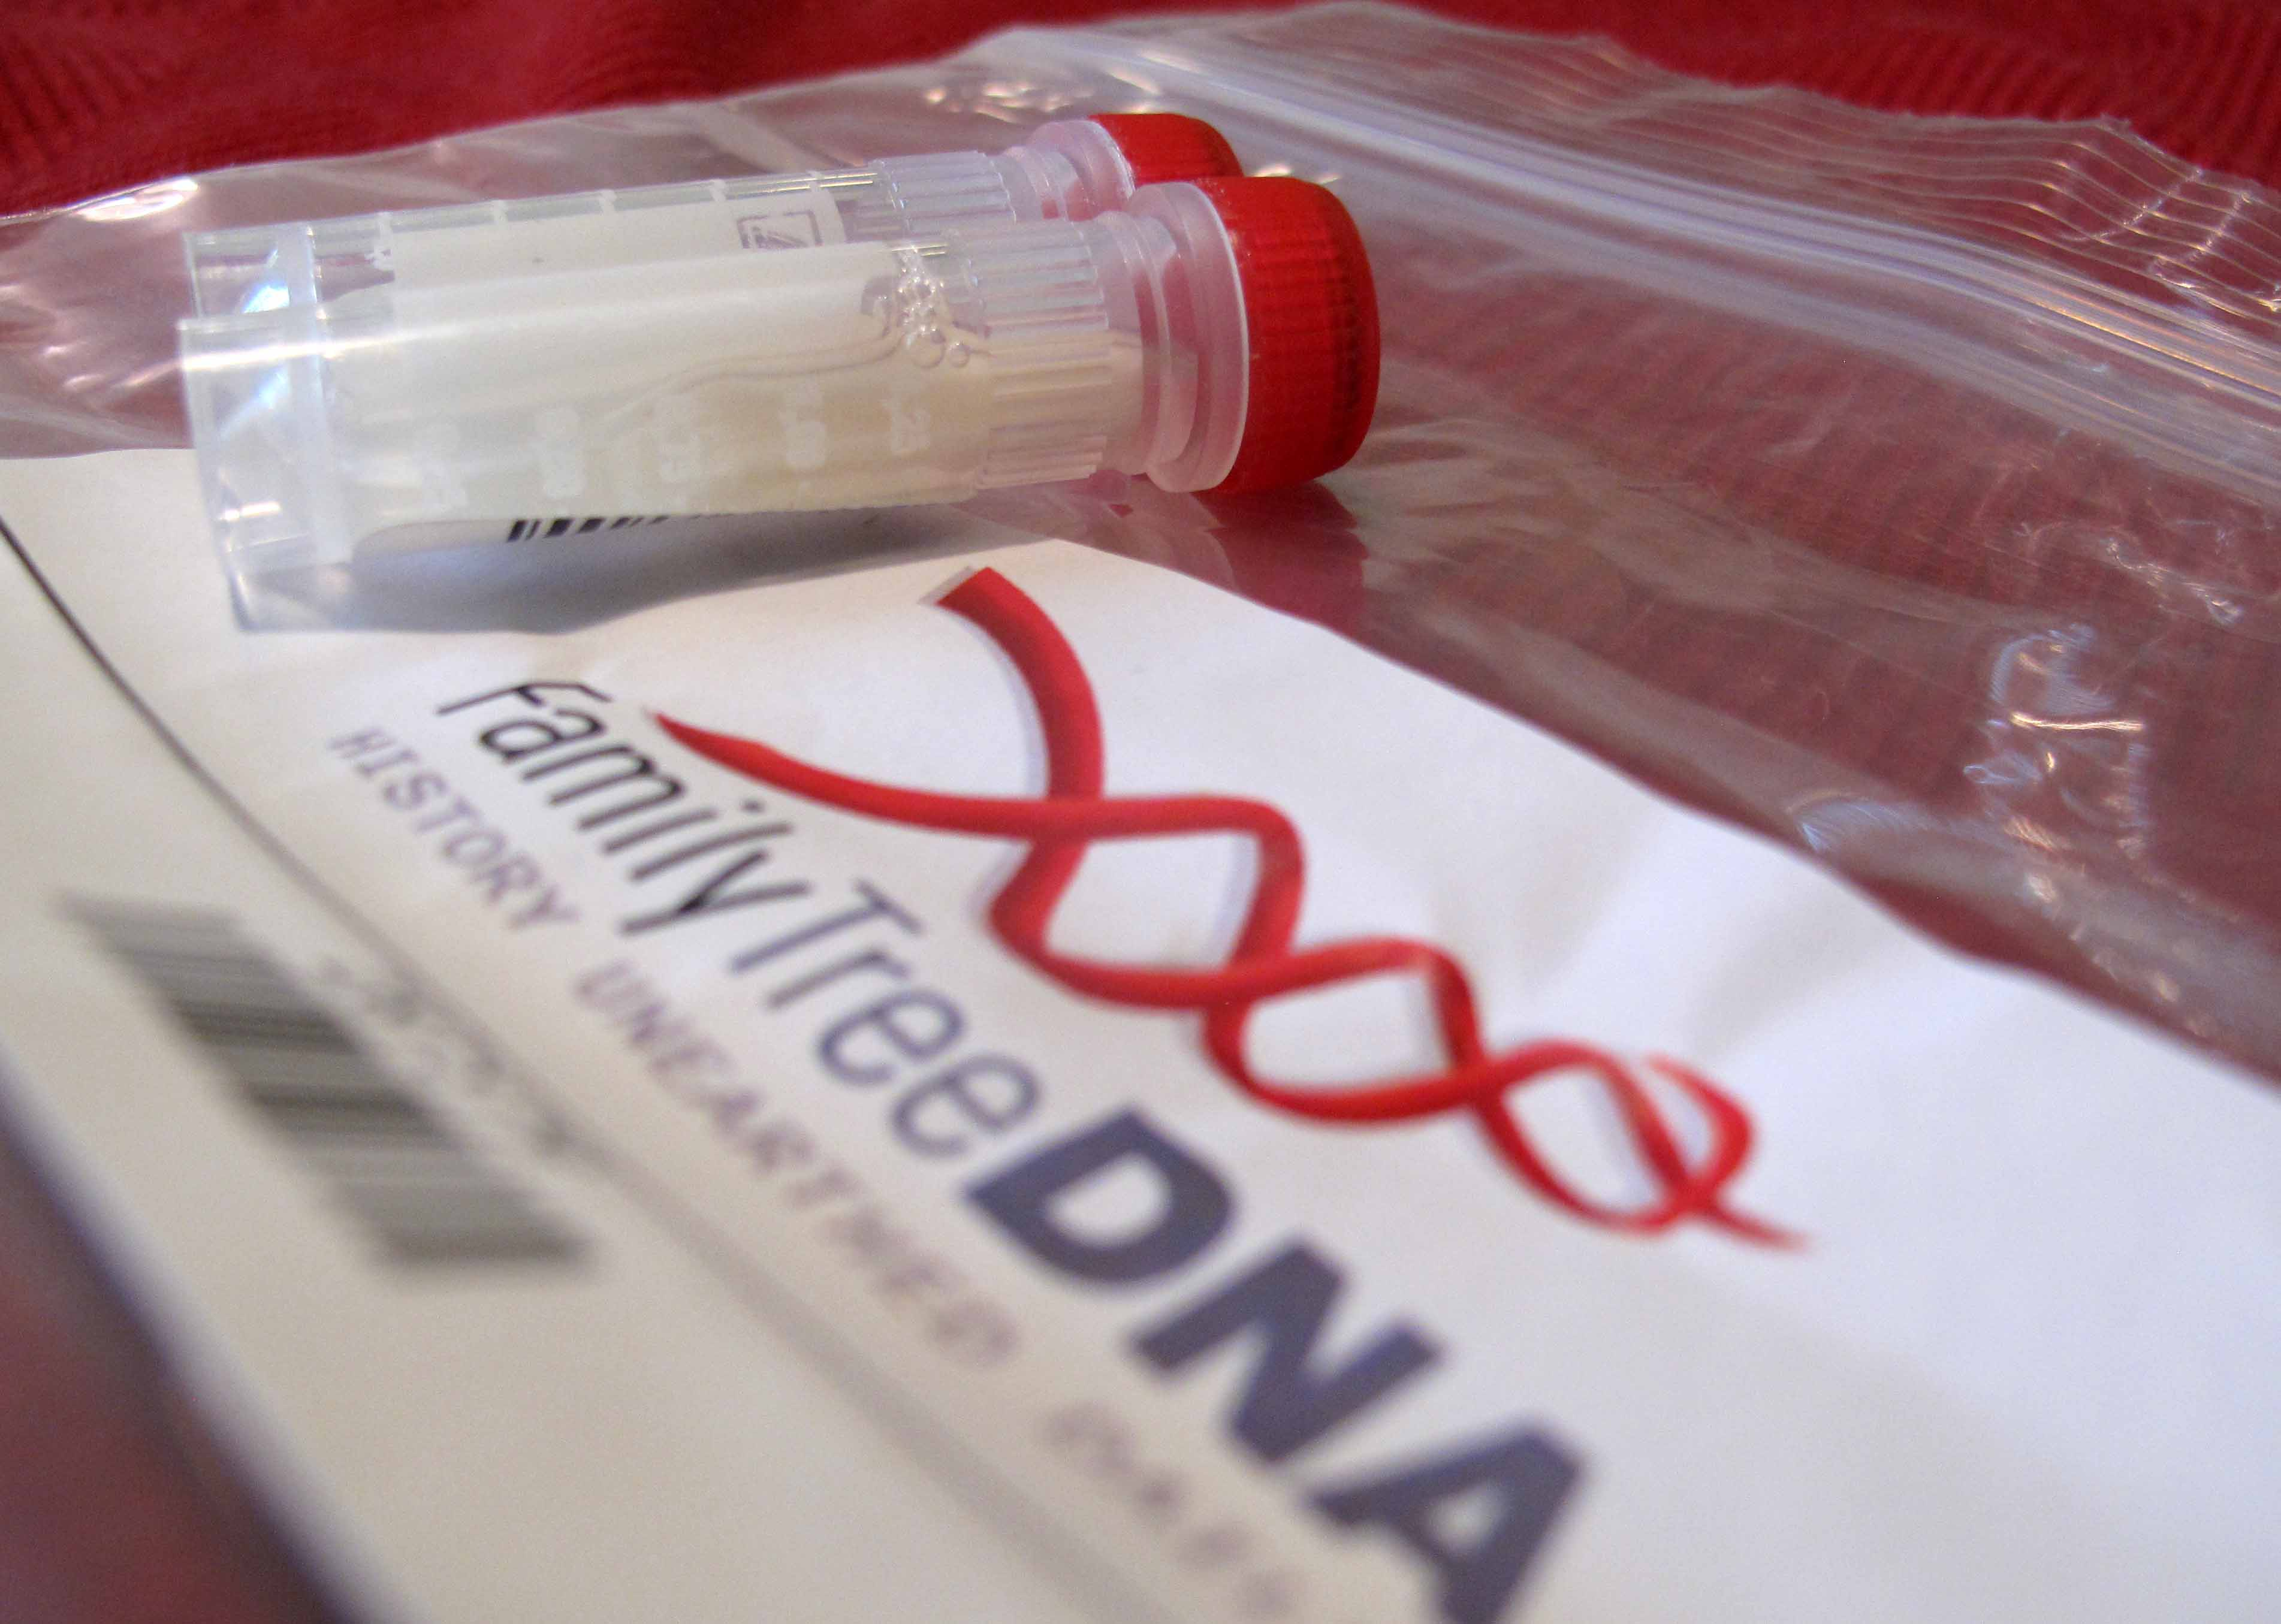 Bahamas DNA Project Update: DNA Test Kits on Sale